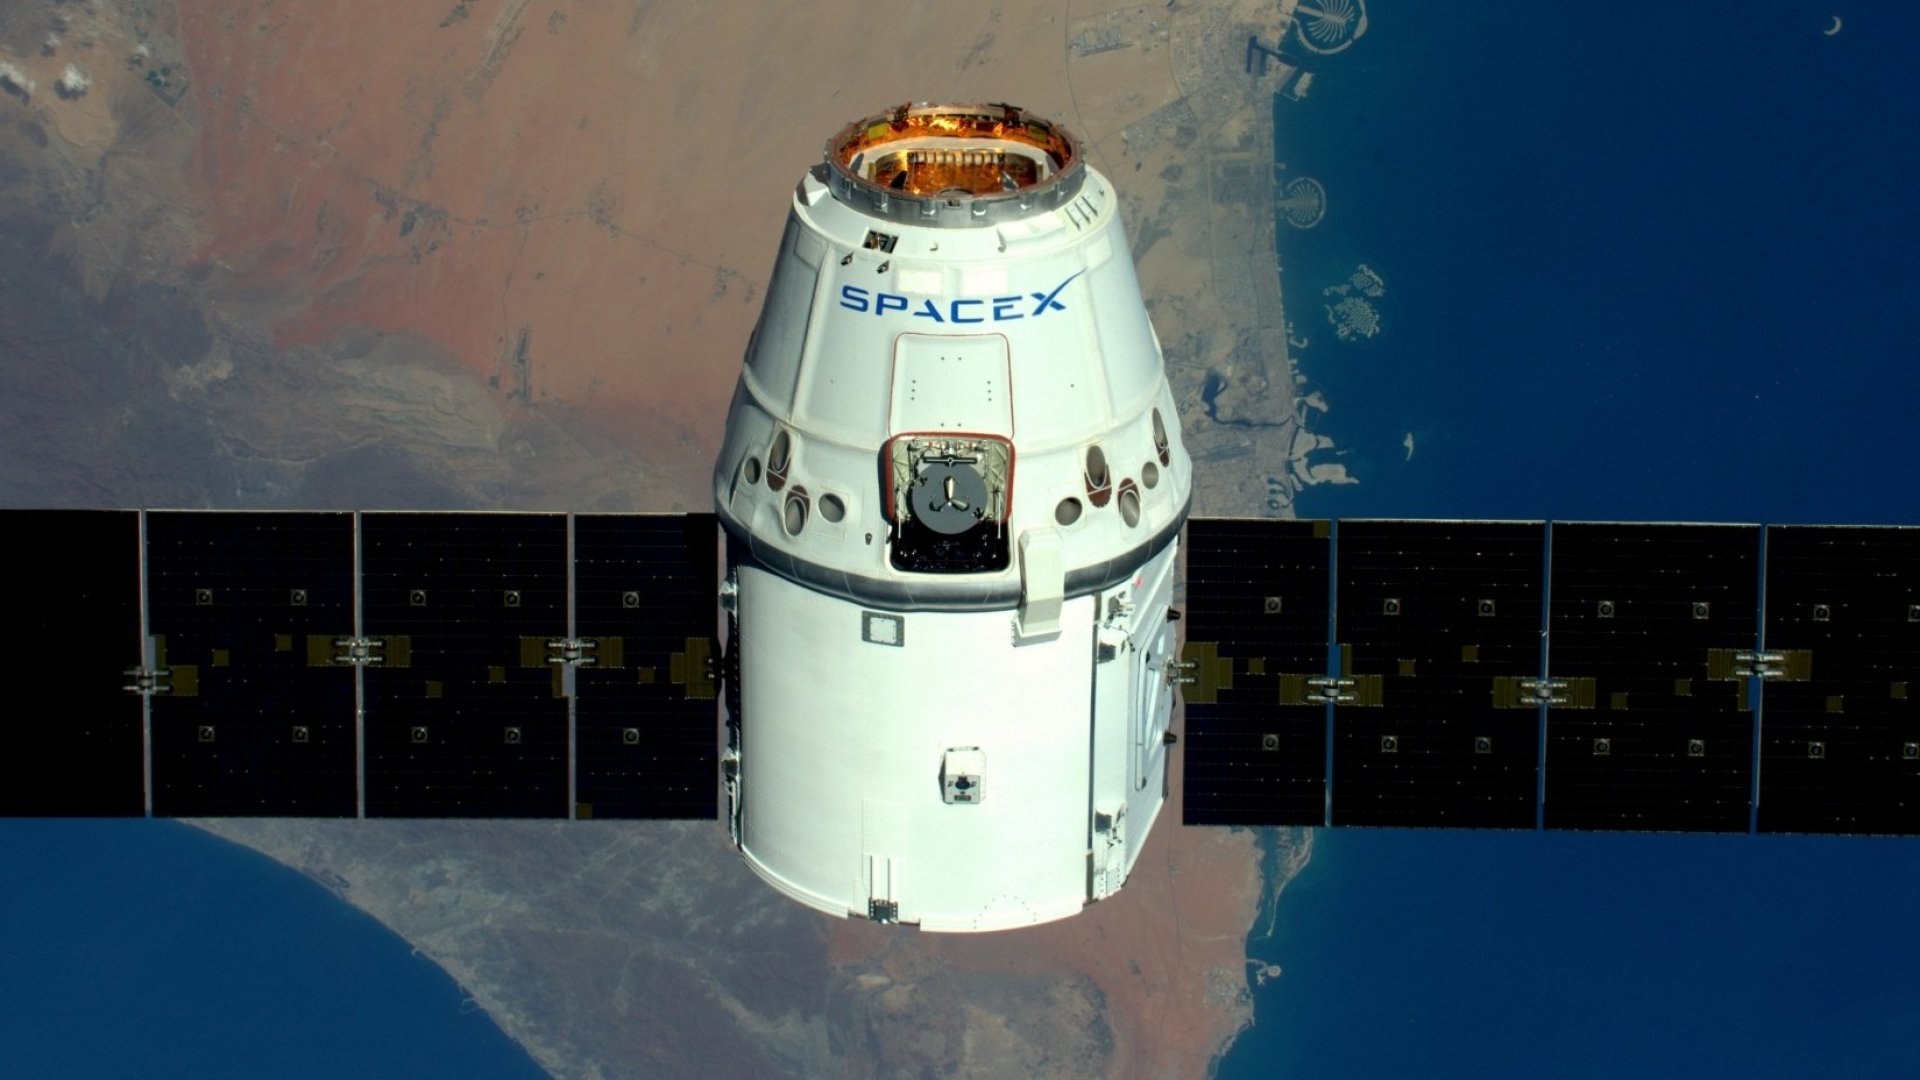 A shot of the SpaceX Dragon 1 taken from the International Space Station.